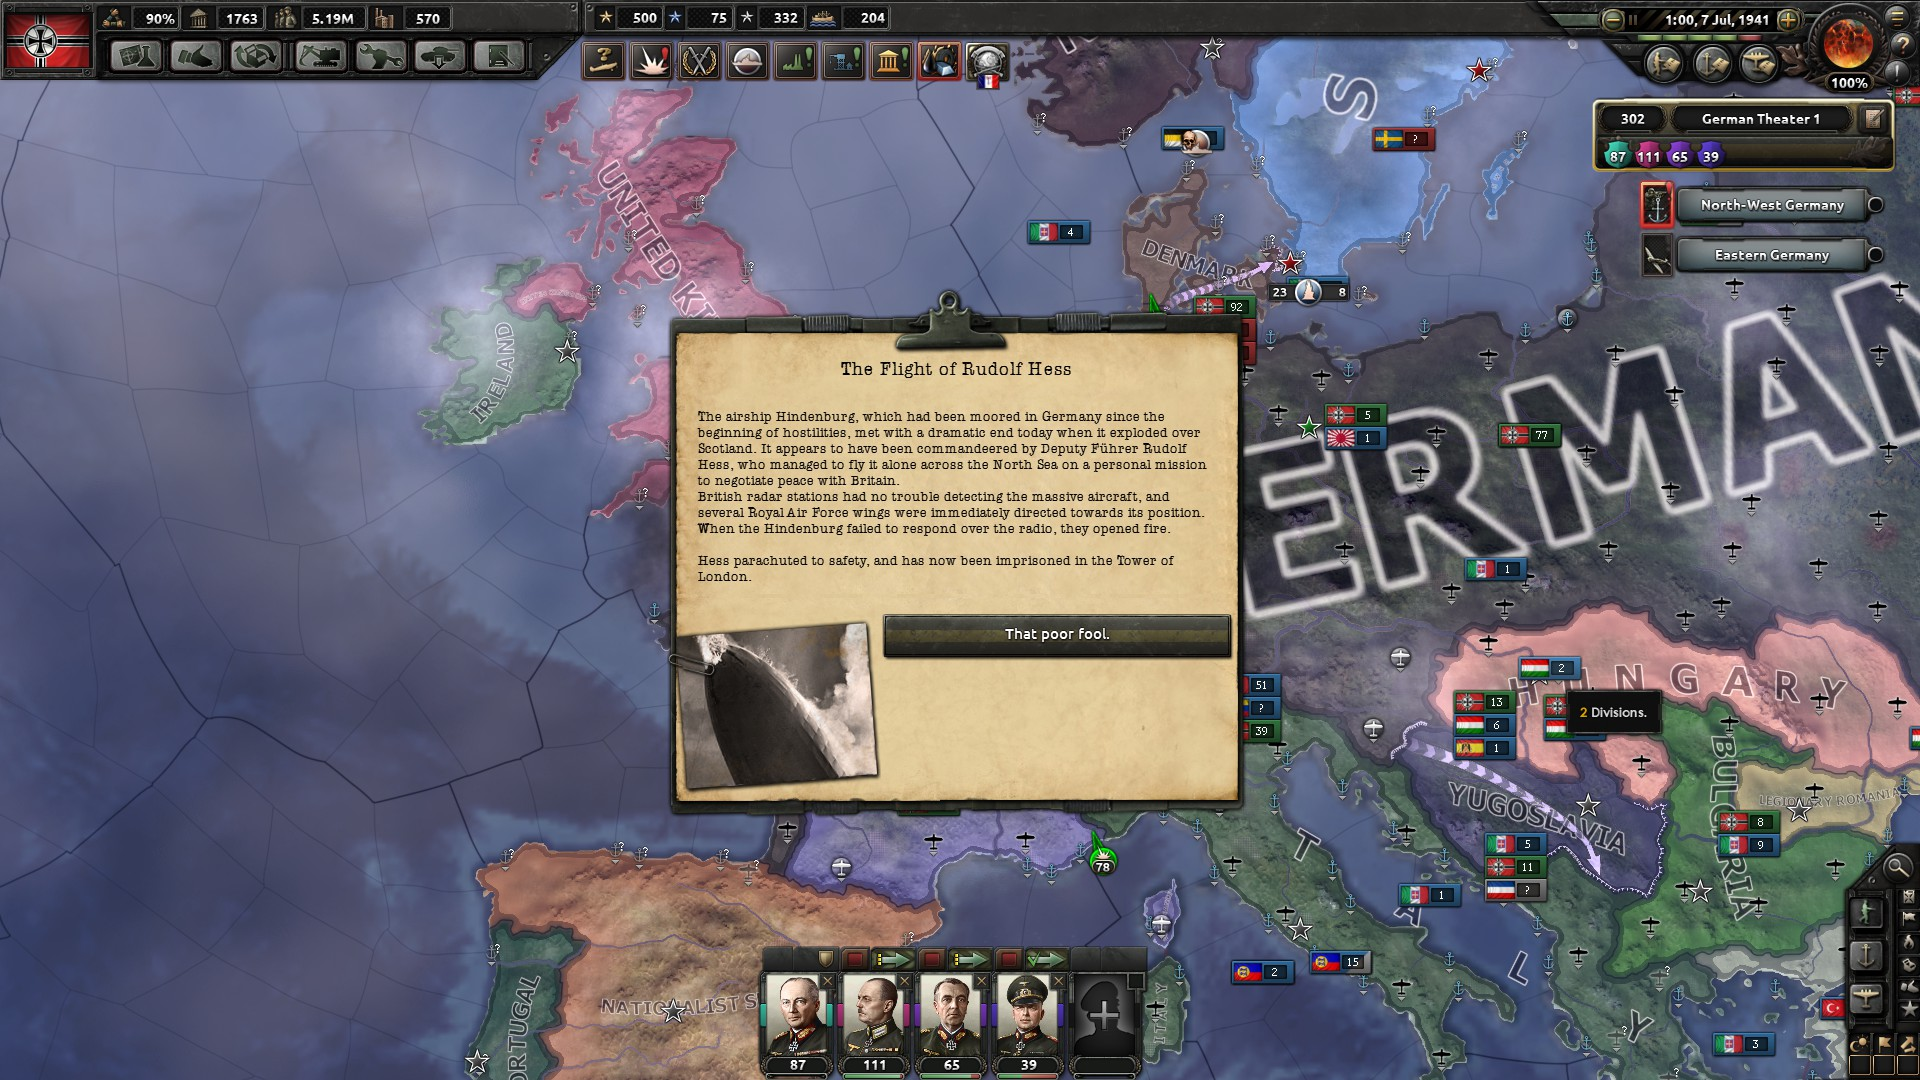 Hearts of Iron IV: World War II Grand Strategy (UPDATE March